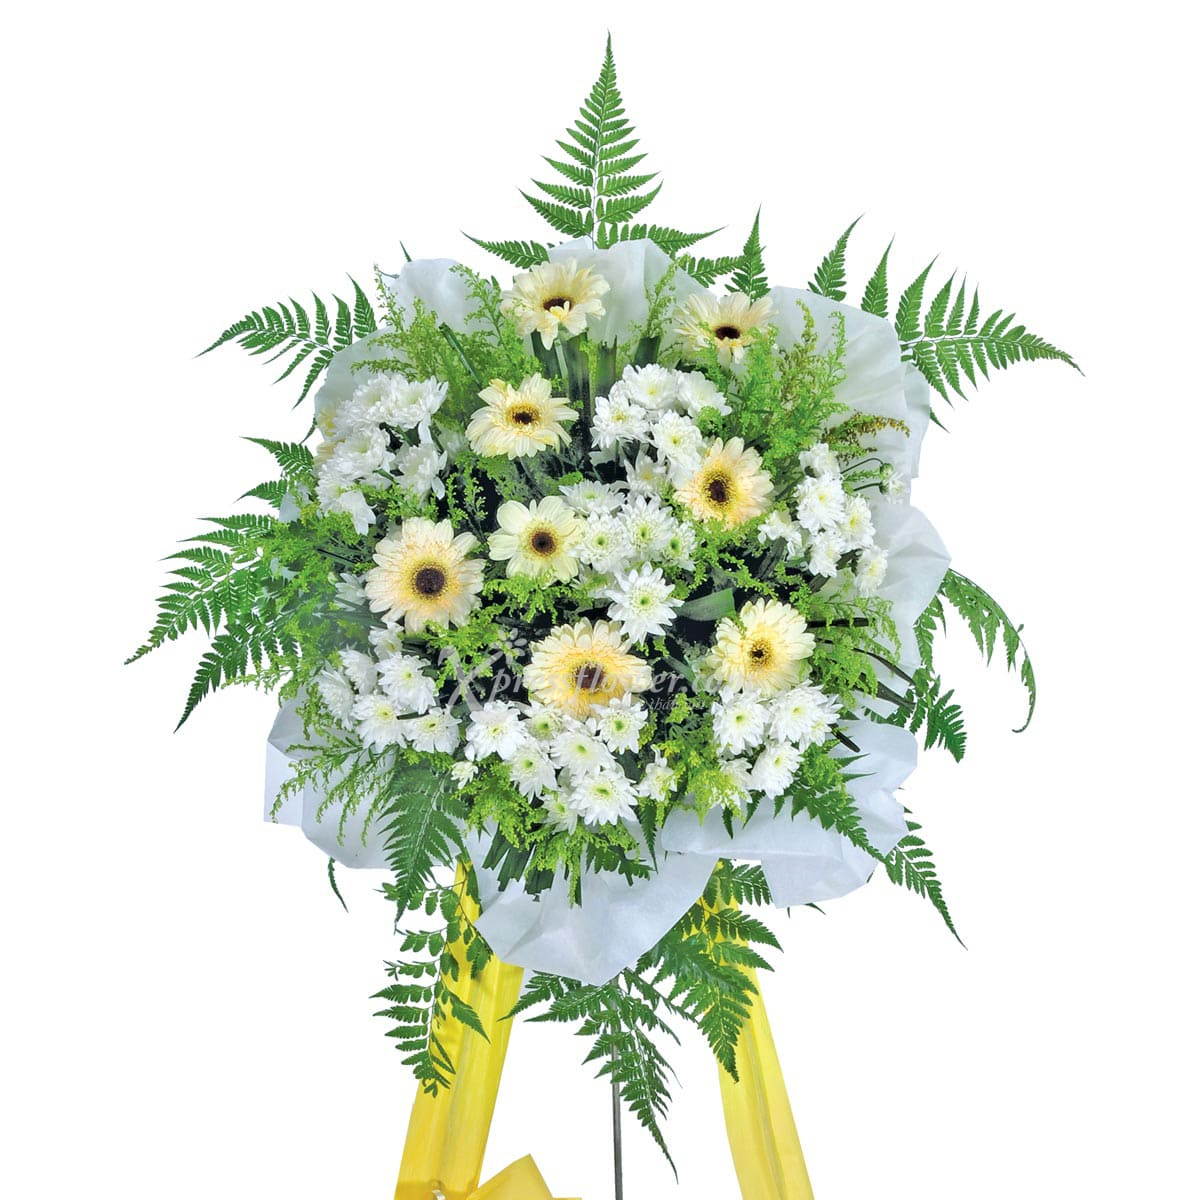 Deepest Reverence (Wreath)